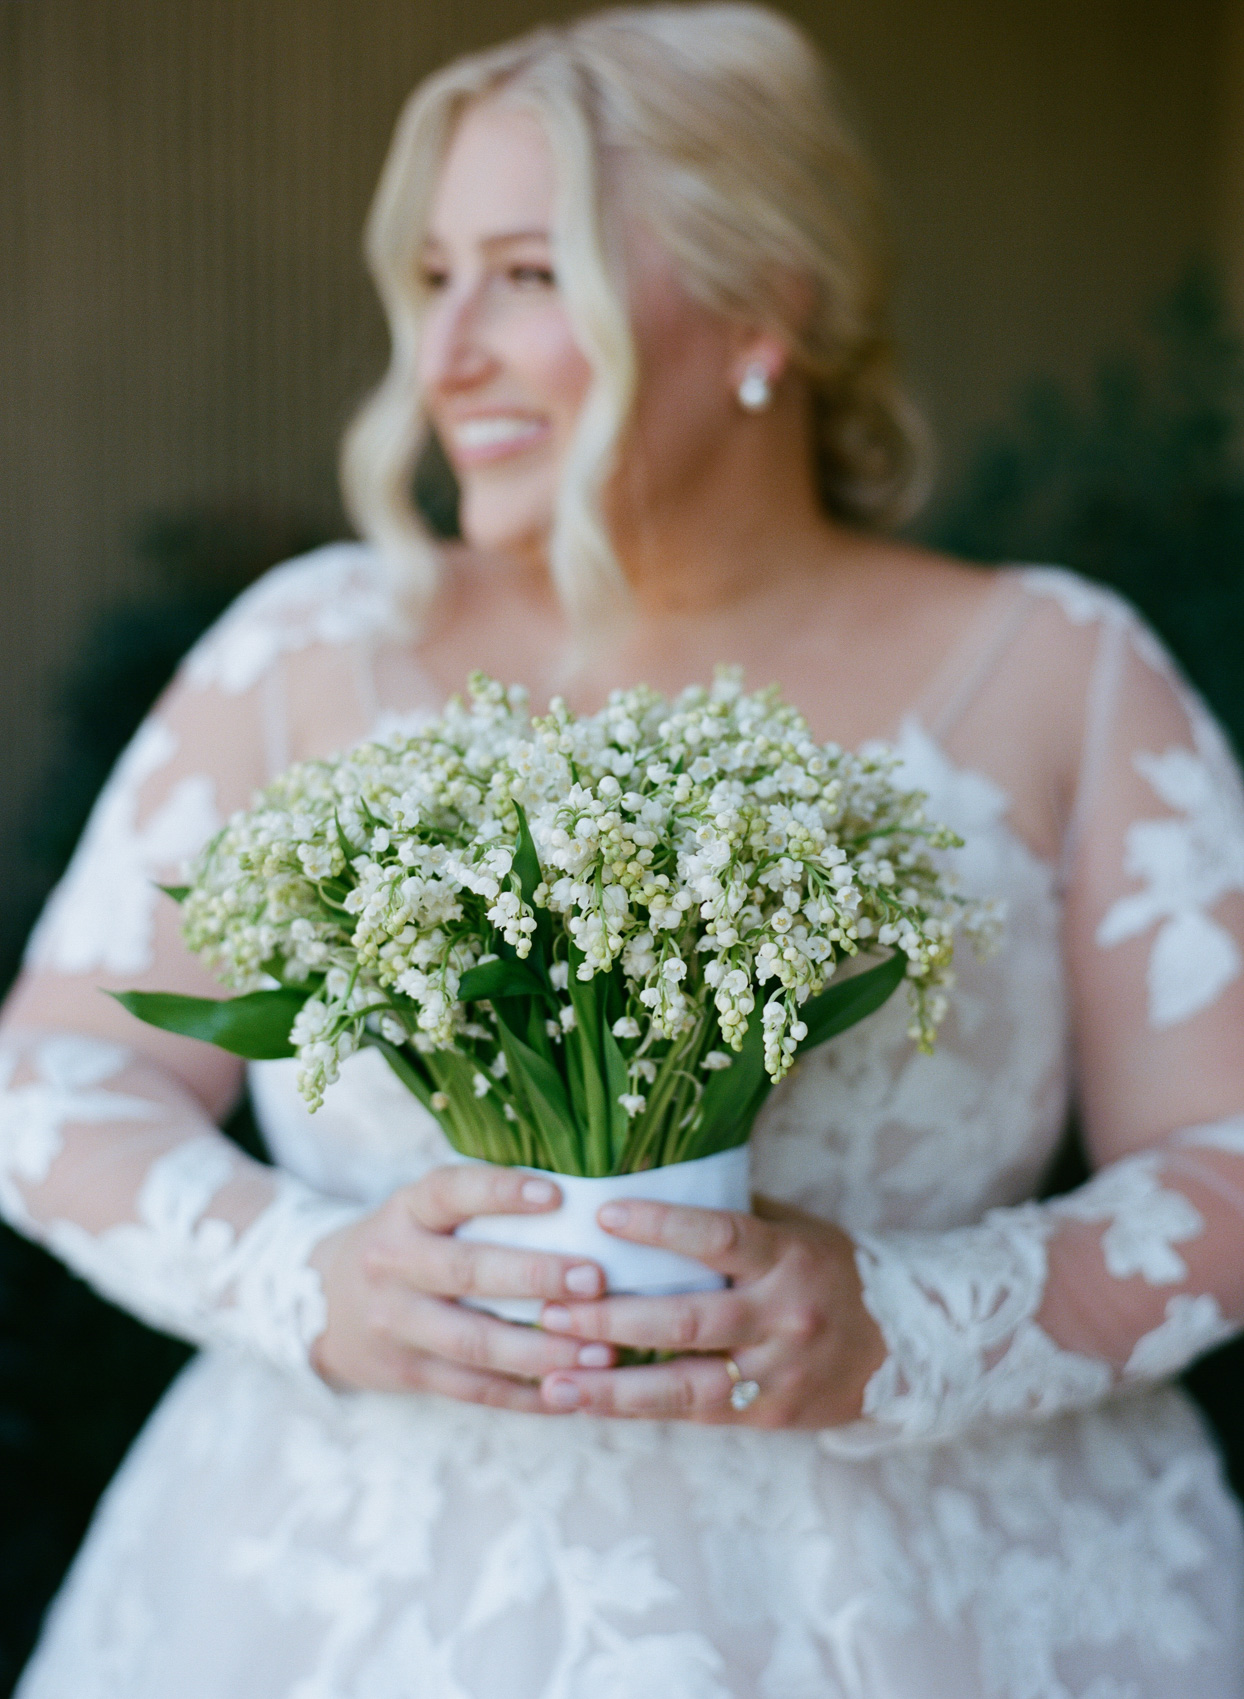 Bride holding bouquet with white flowers